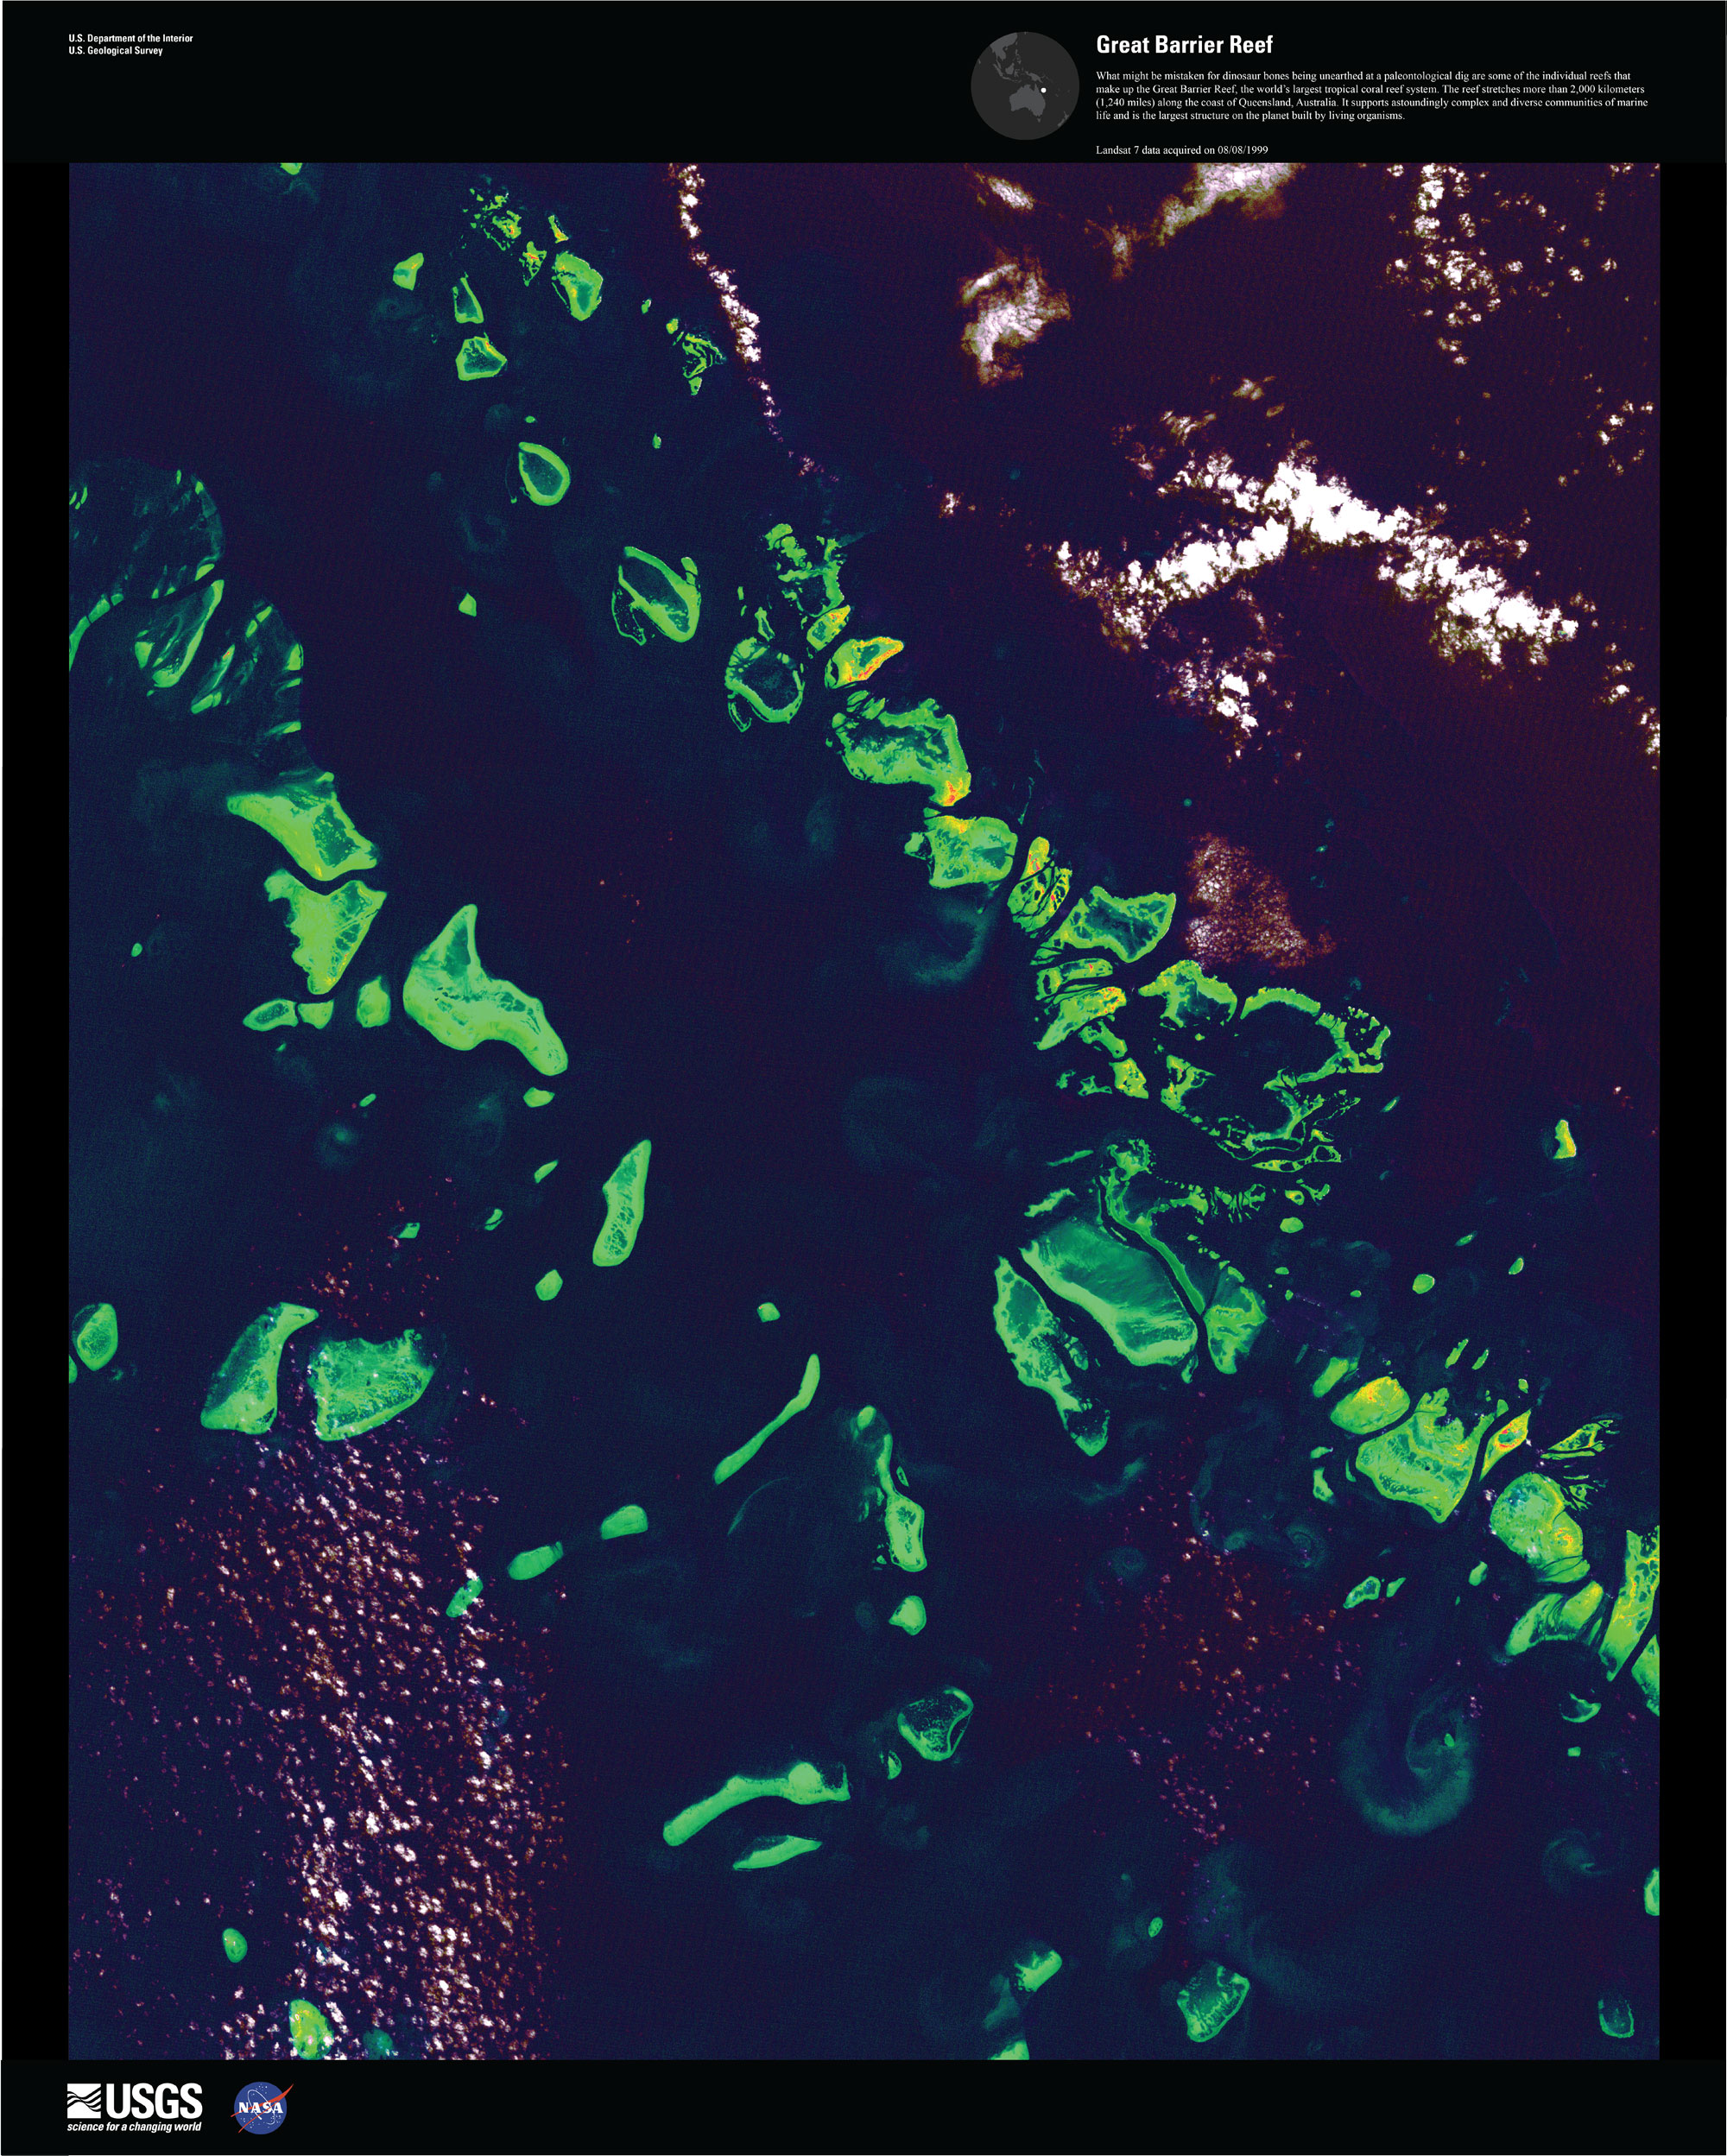 Satellite image of the Great Barrier Reef